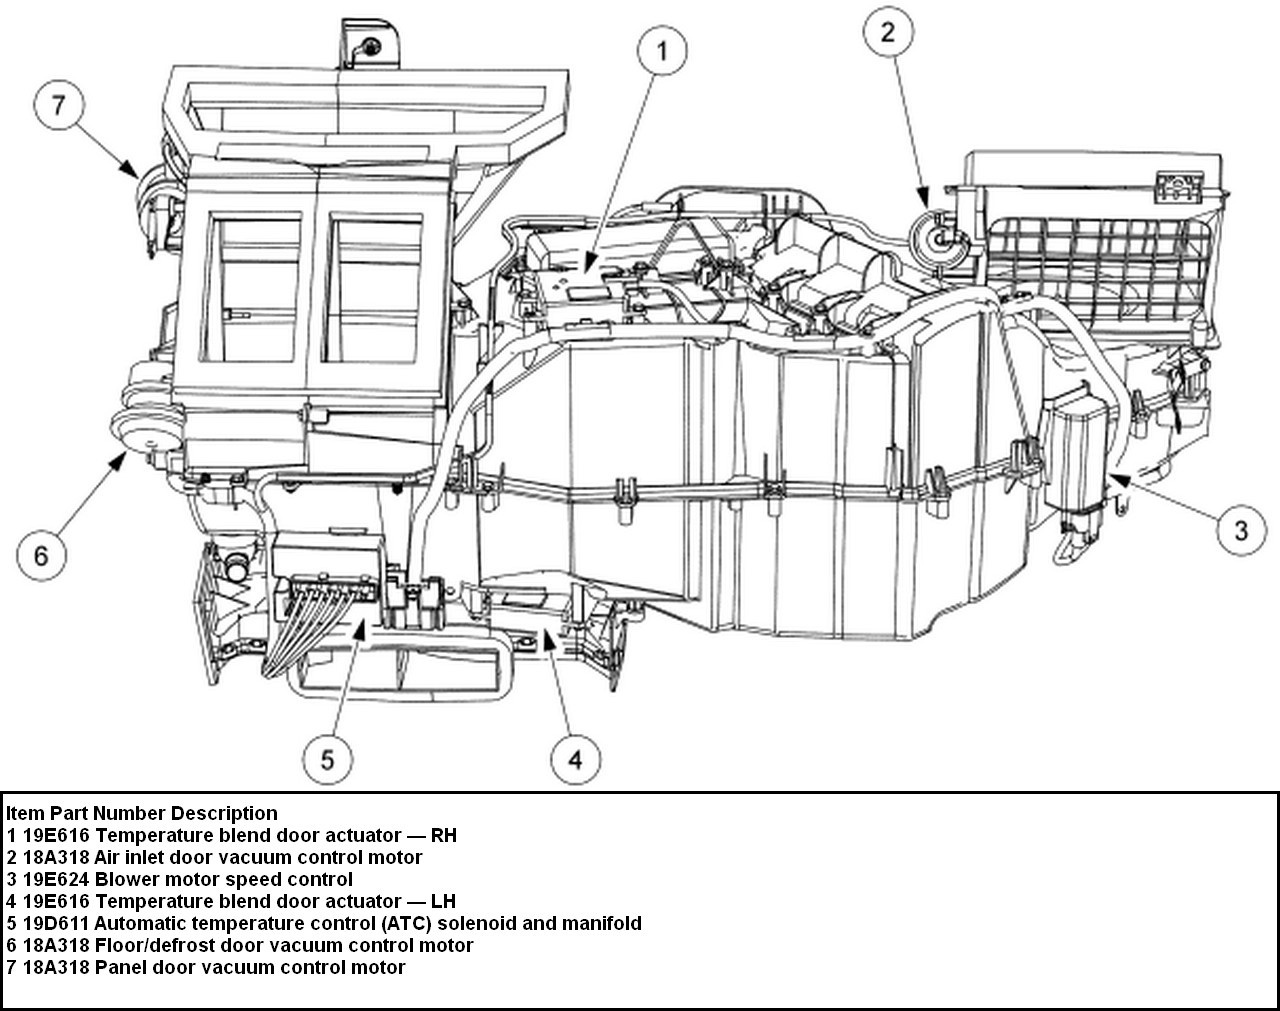 WRG-5568] 2001 F150 5 4 Engine Ignition Diagram